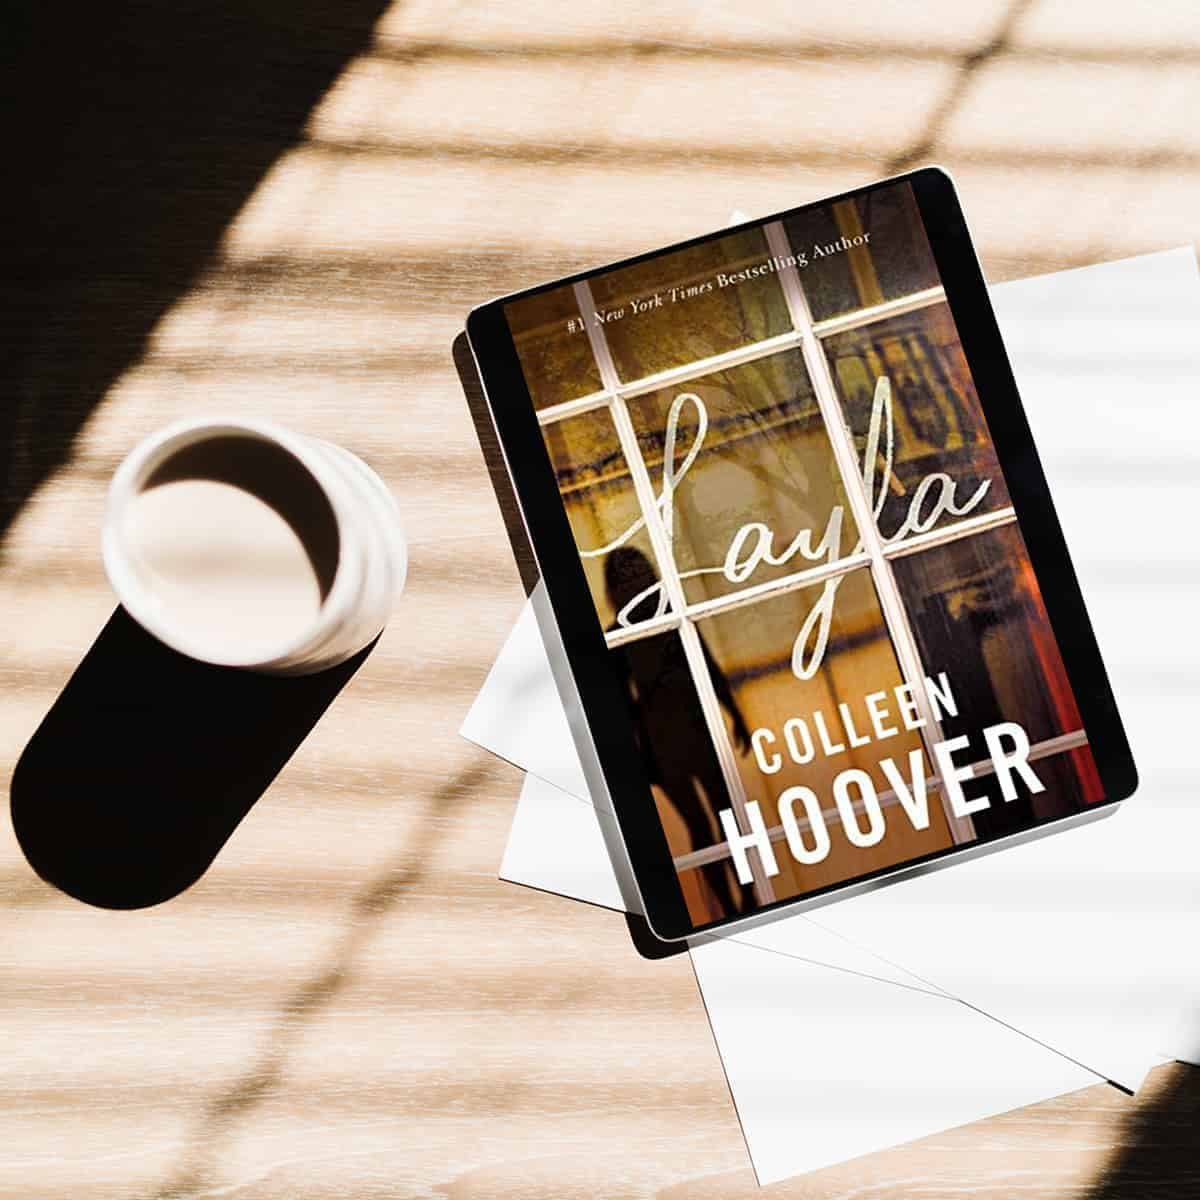 Layla by Colleen Hoover-featured